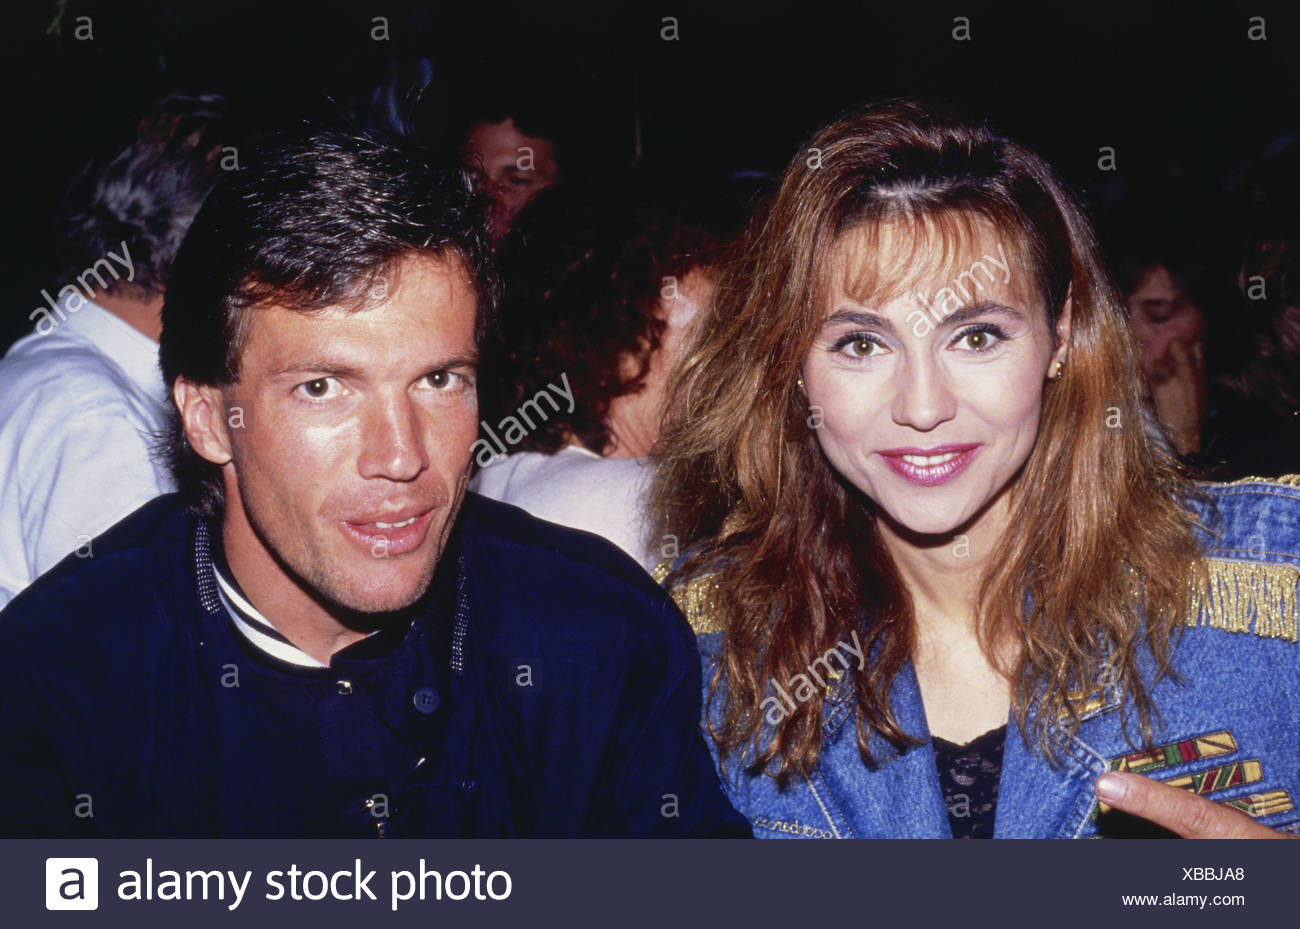 Matthäus, Lothar  * 21.3.1961, German athlete (soccer/football), half length with his second wife Lolita Morena, 1990s years, Additional-Rights-Clearances-NA - Stock Image